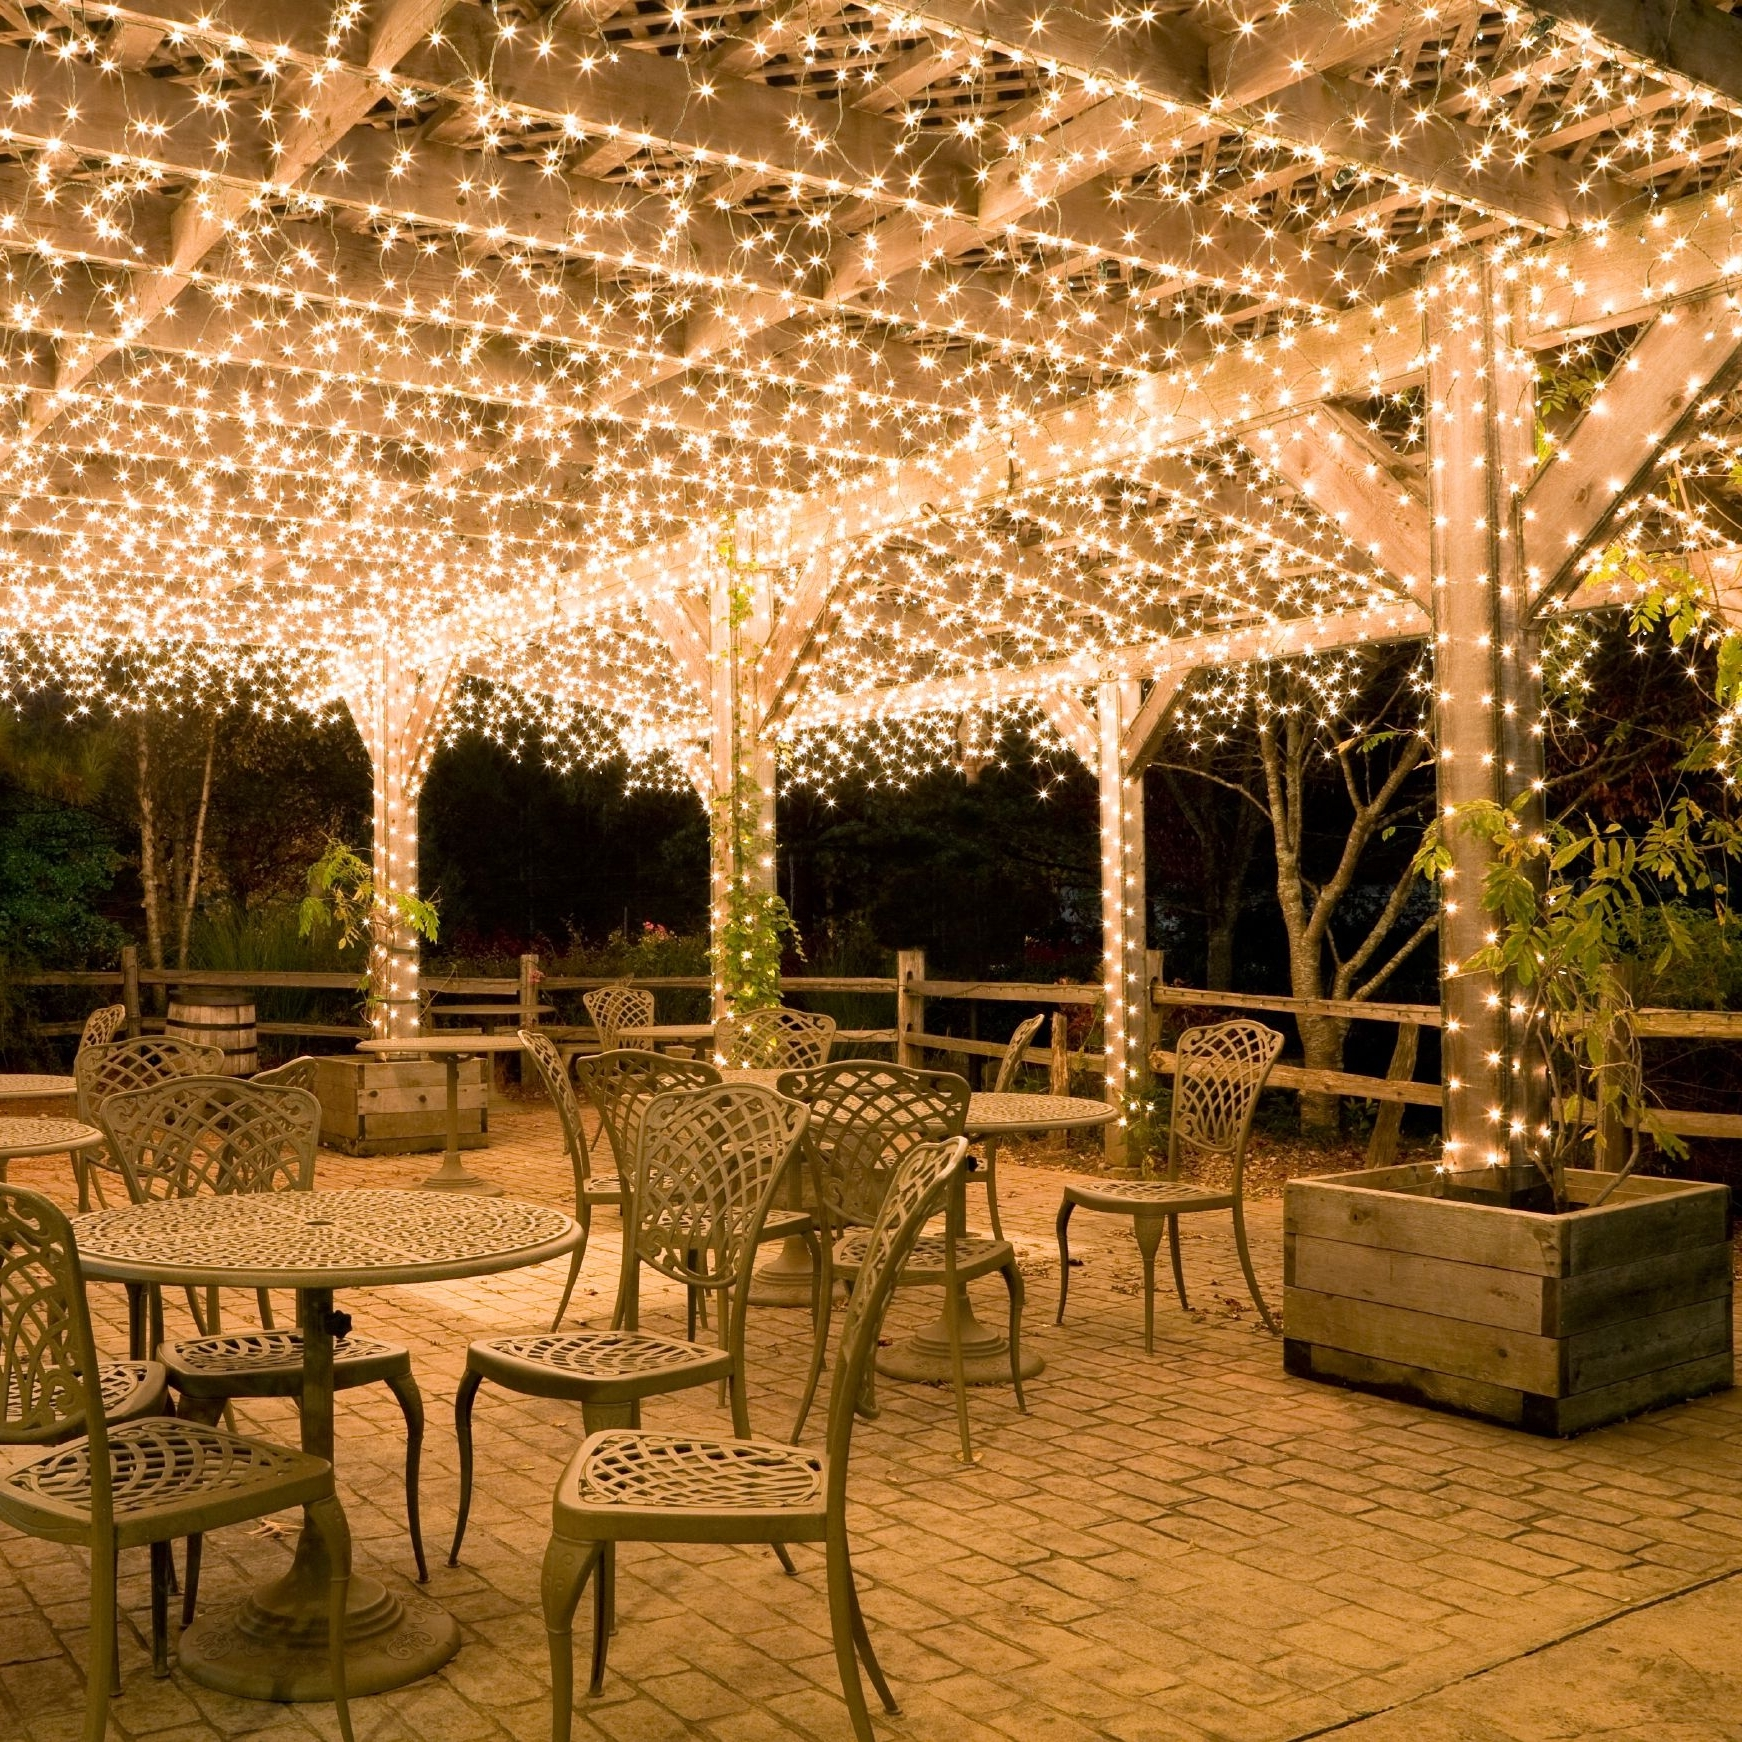 Widely Used Hang White Icicle Lights To Create Magical Outdoor Lighting (View 11 of 20)